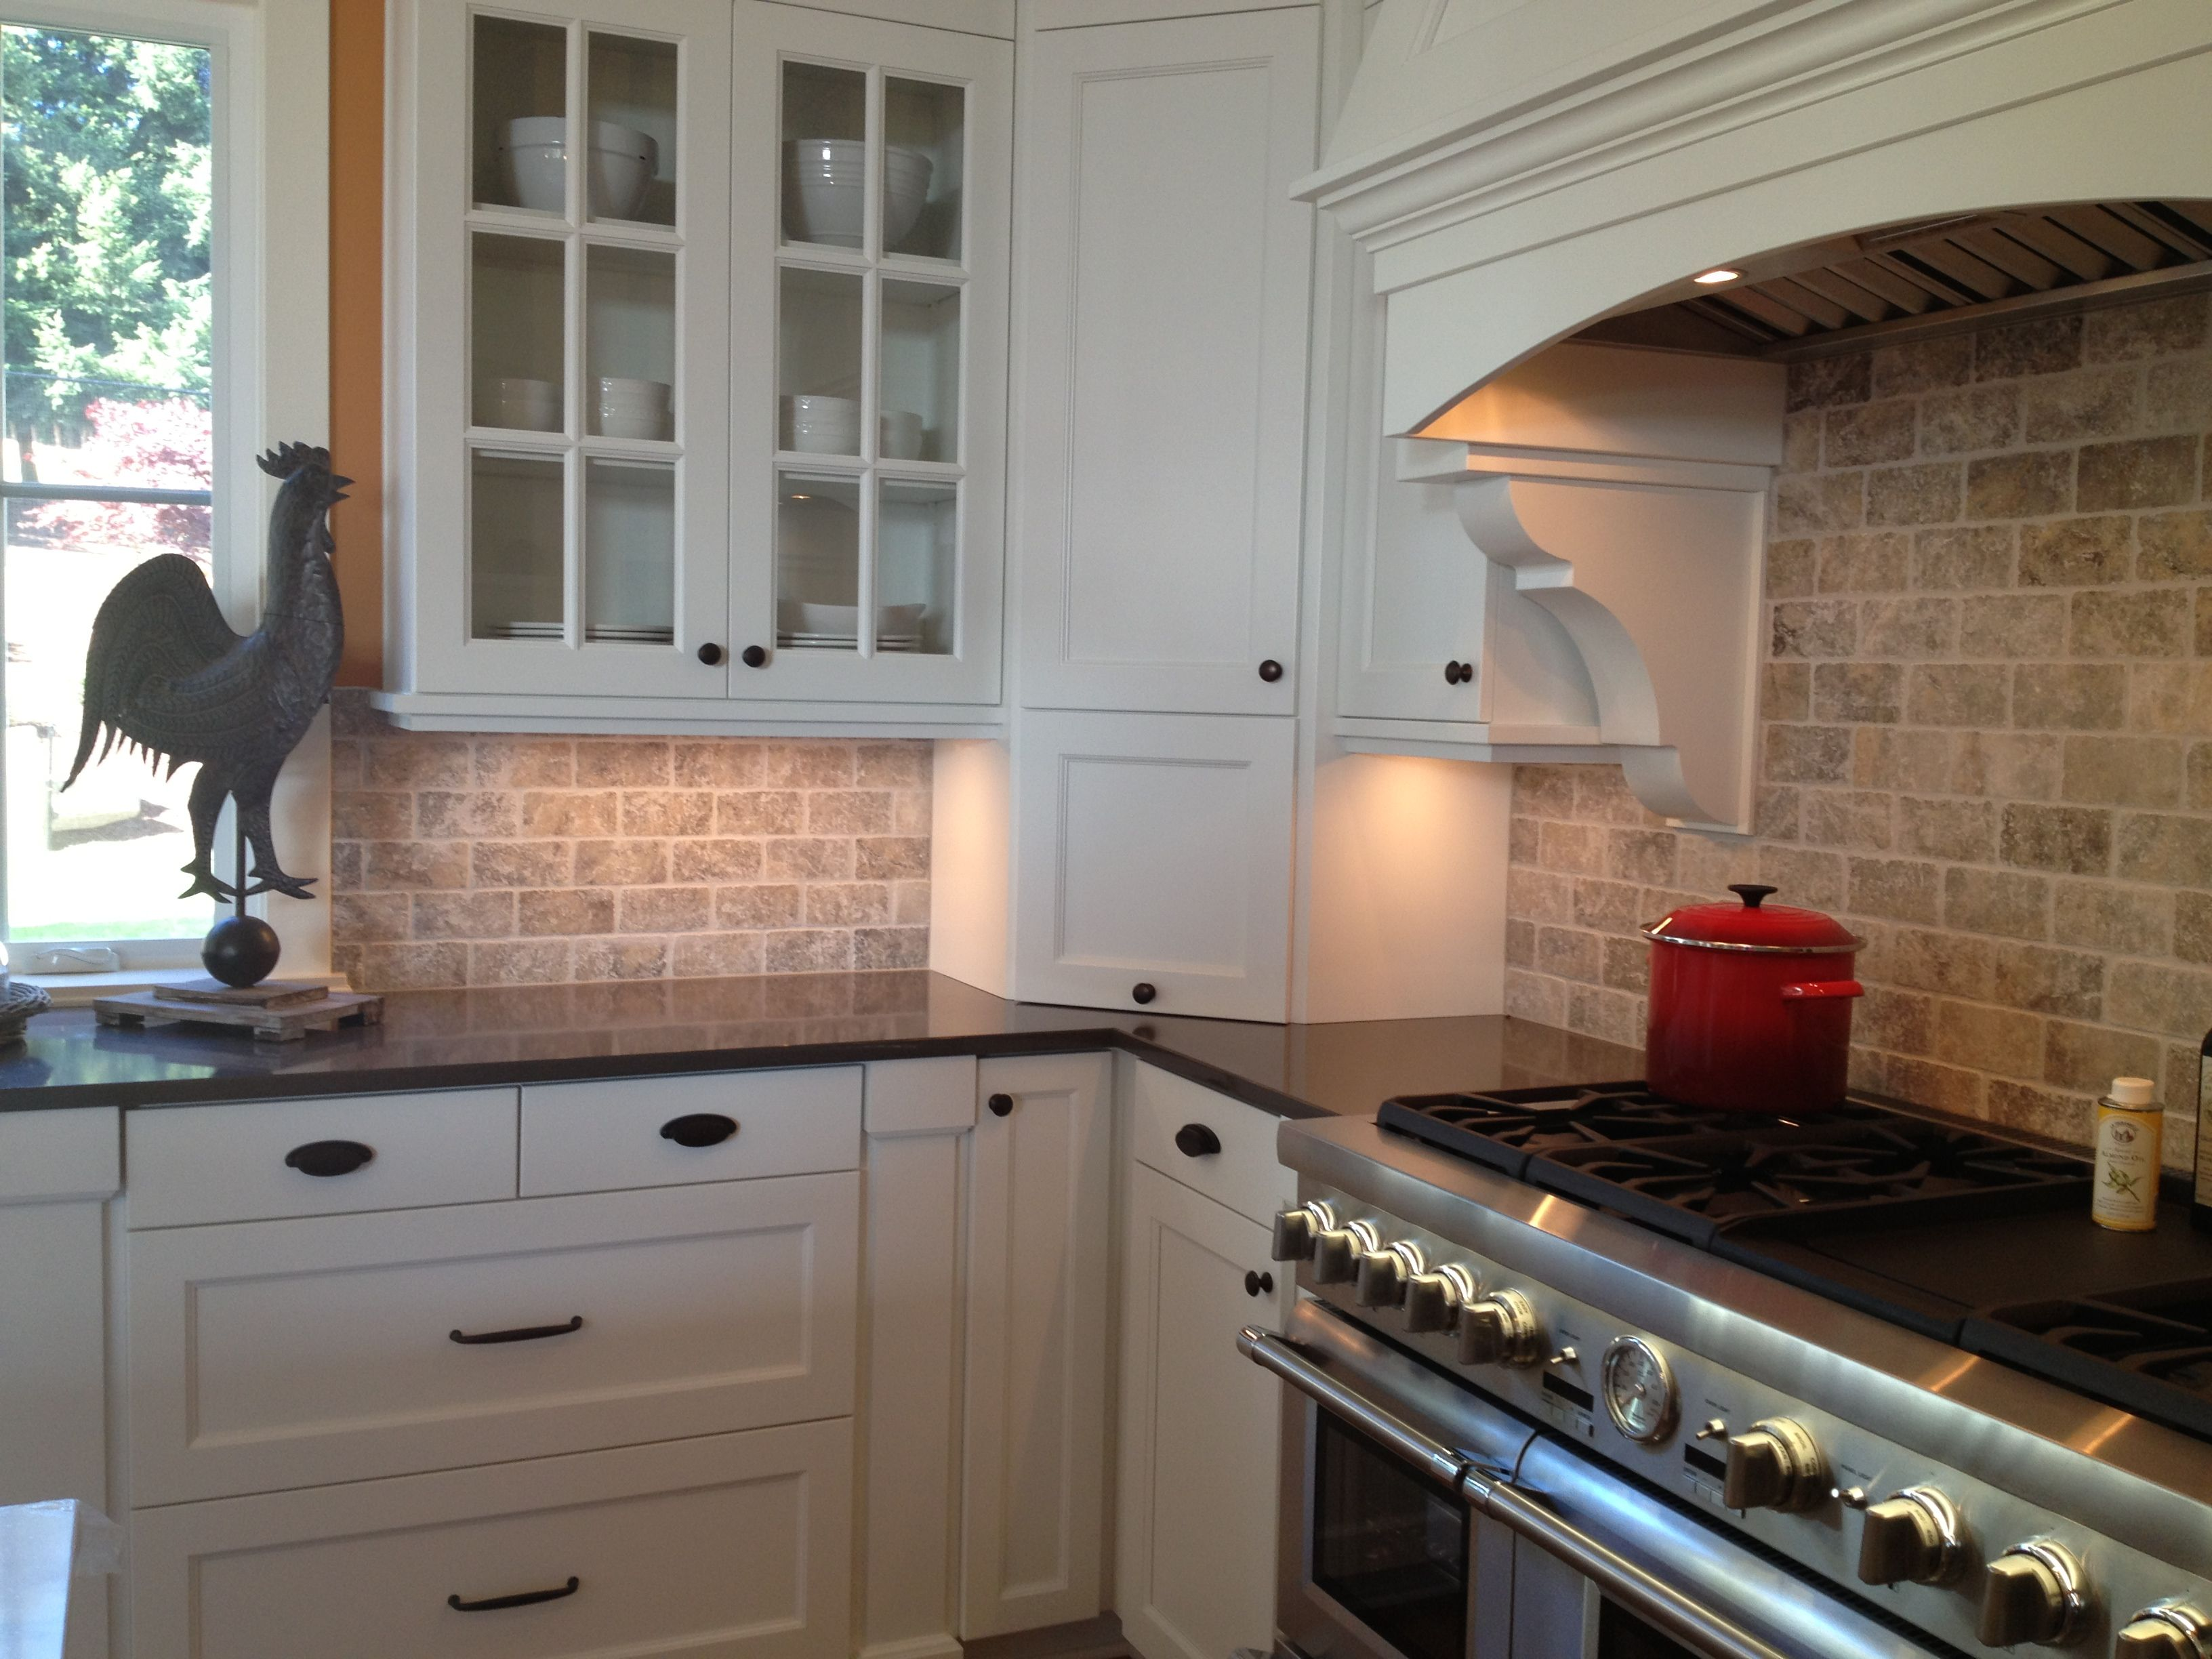 Picture Of Kitchen Travertine Backsplash With White Cabinets And Black Countertop